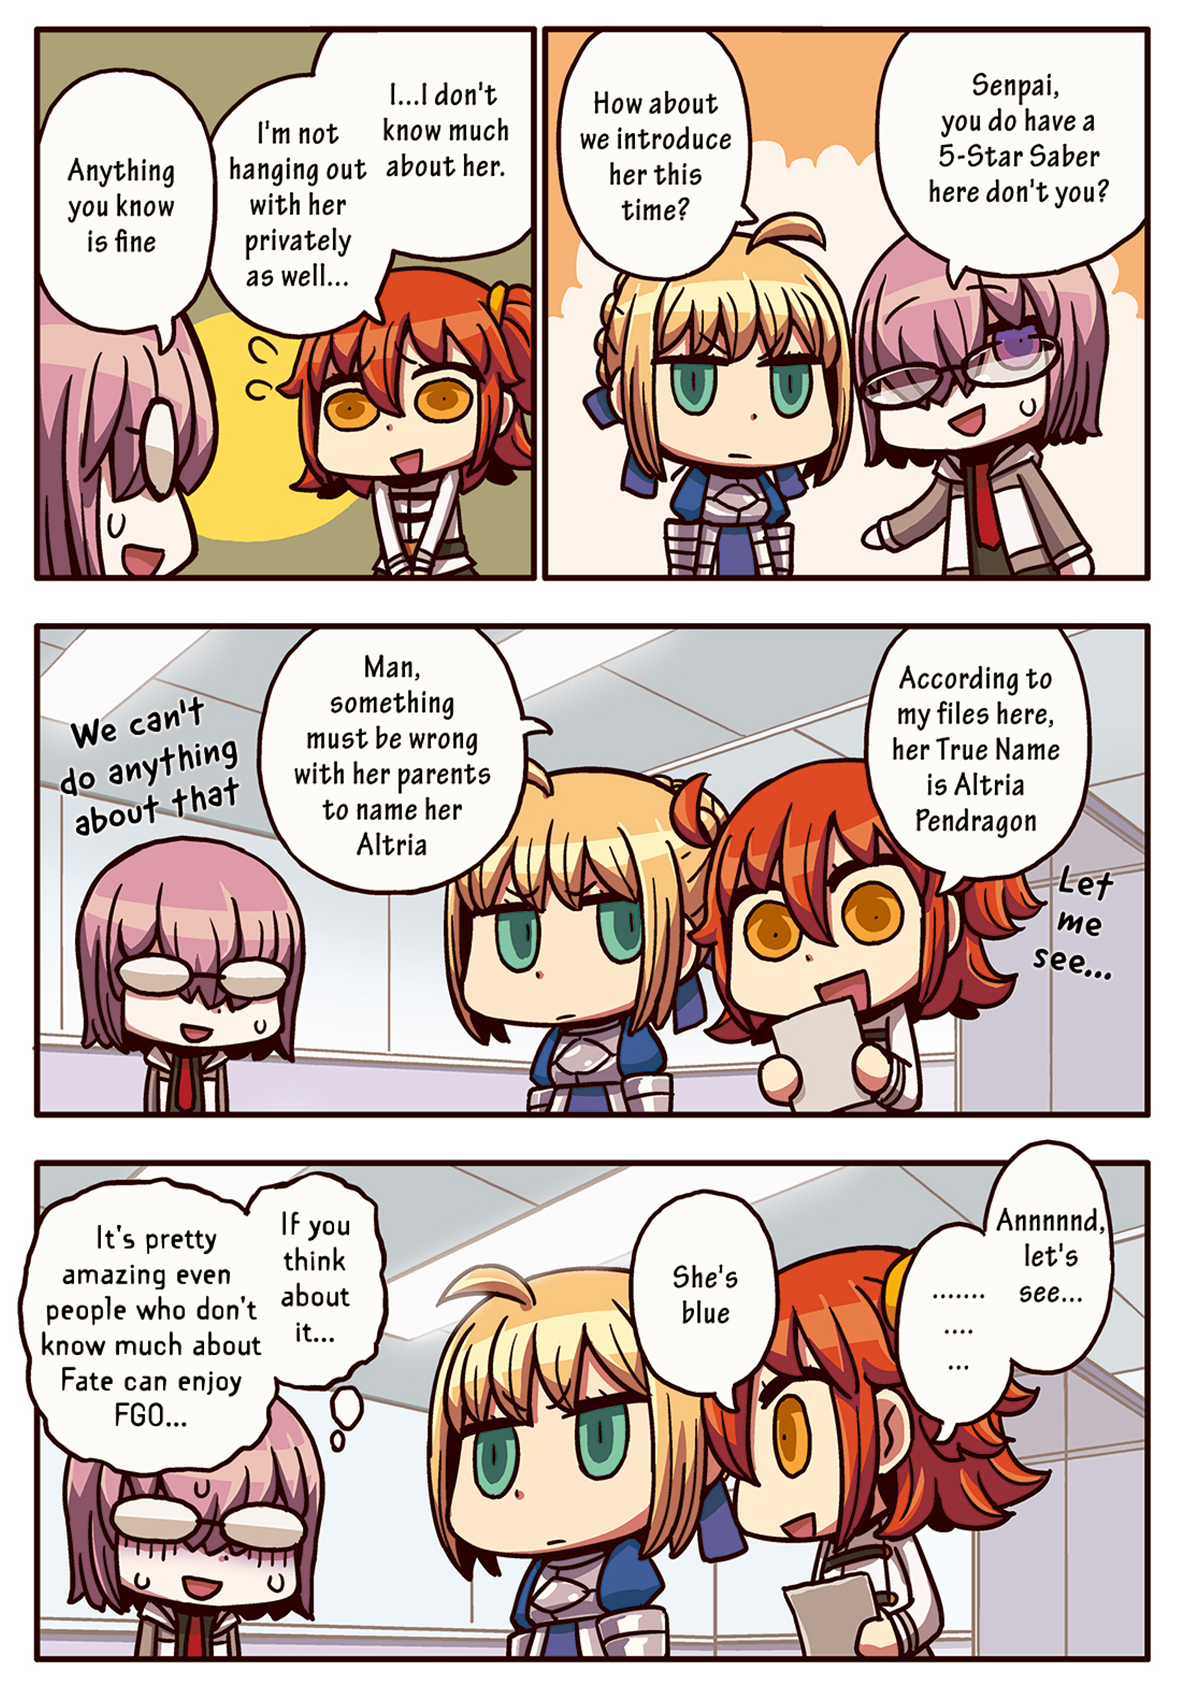 Episode 3 More Learning with Manga! Fate/Grand Order